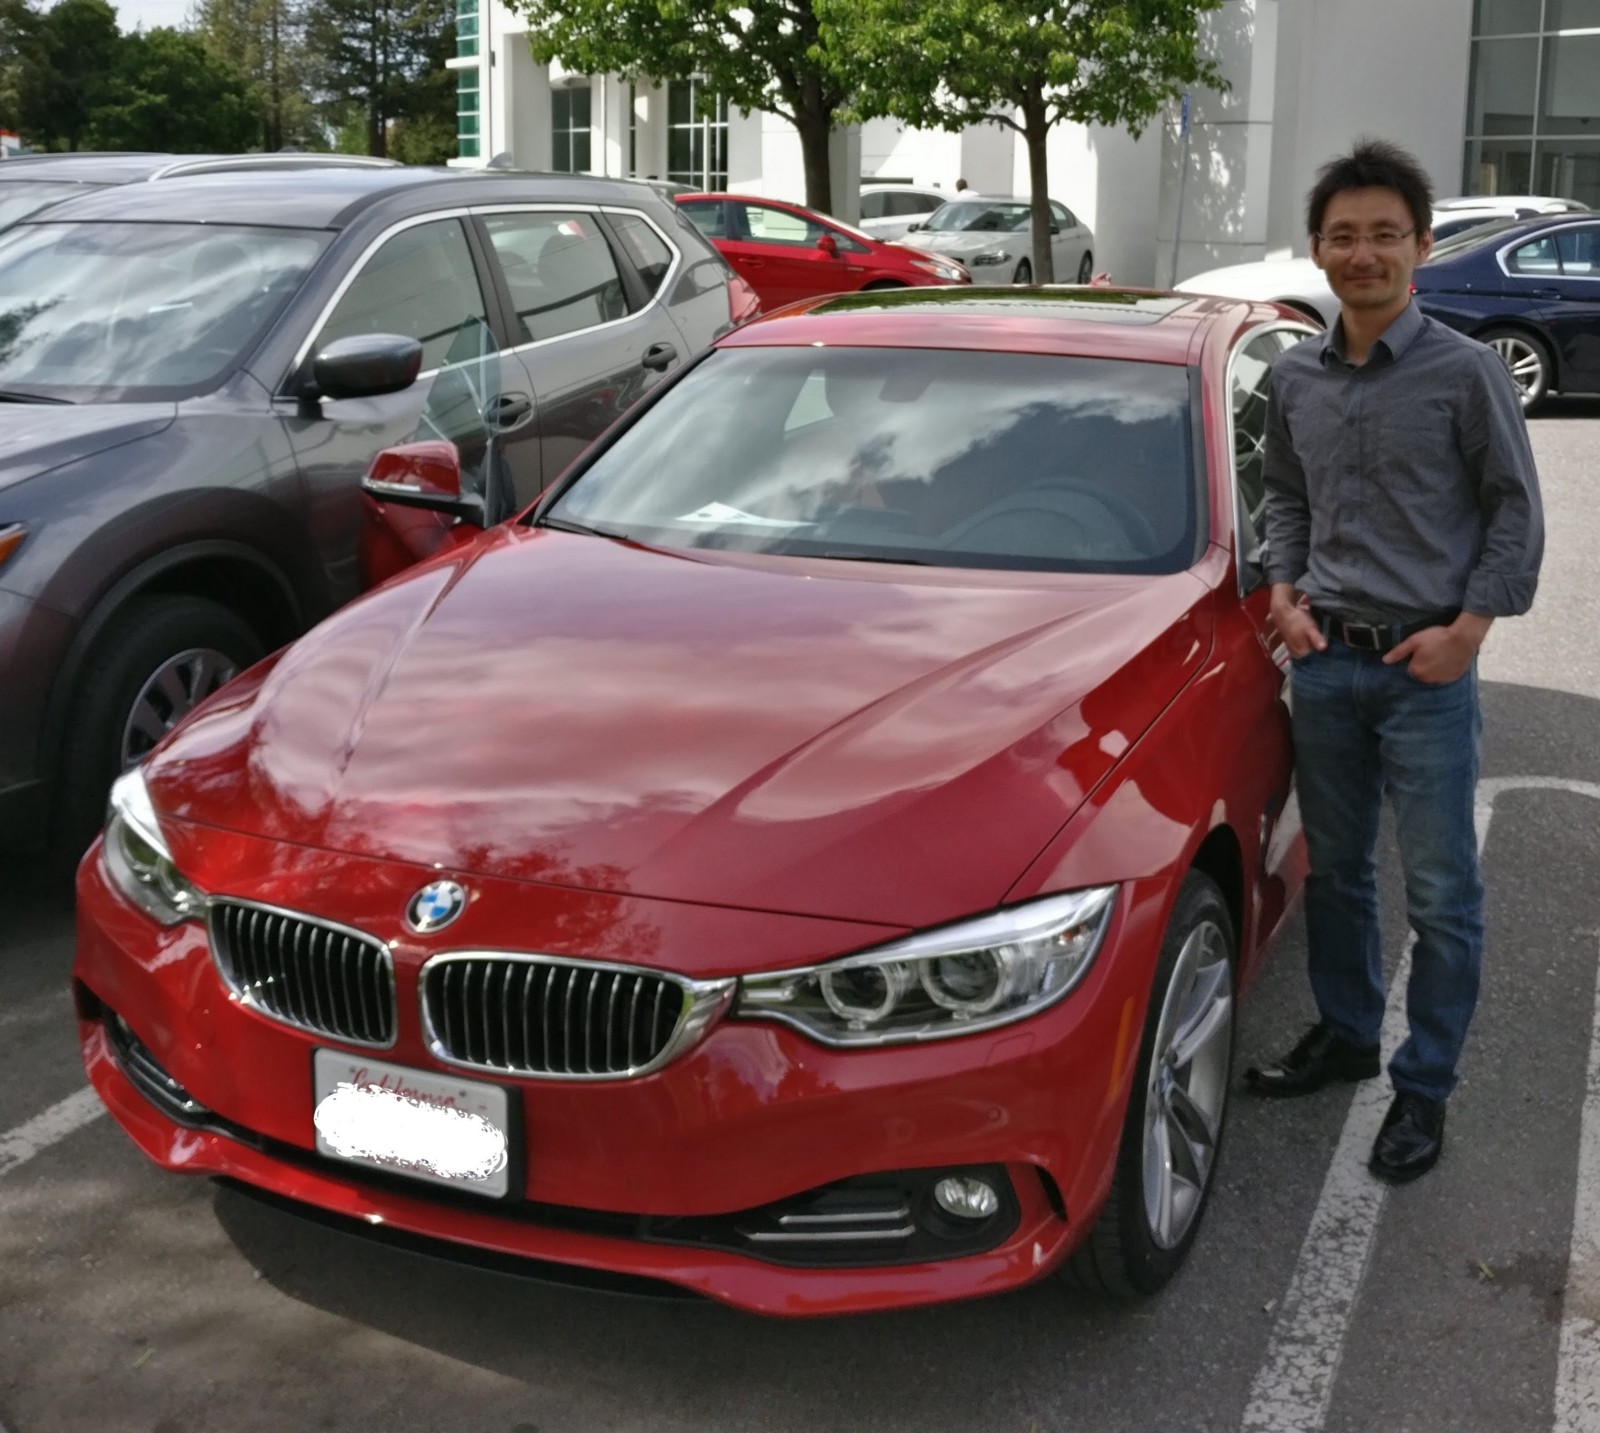 One Of The Perks For Working At BMW, The U201cemployee Car Programu201d